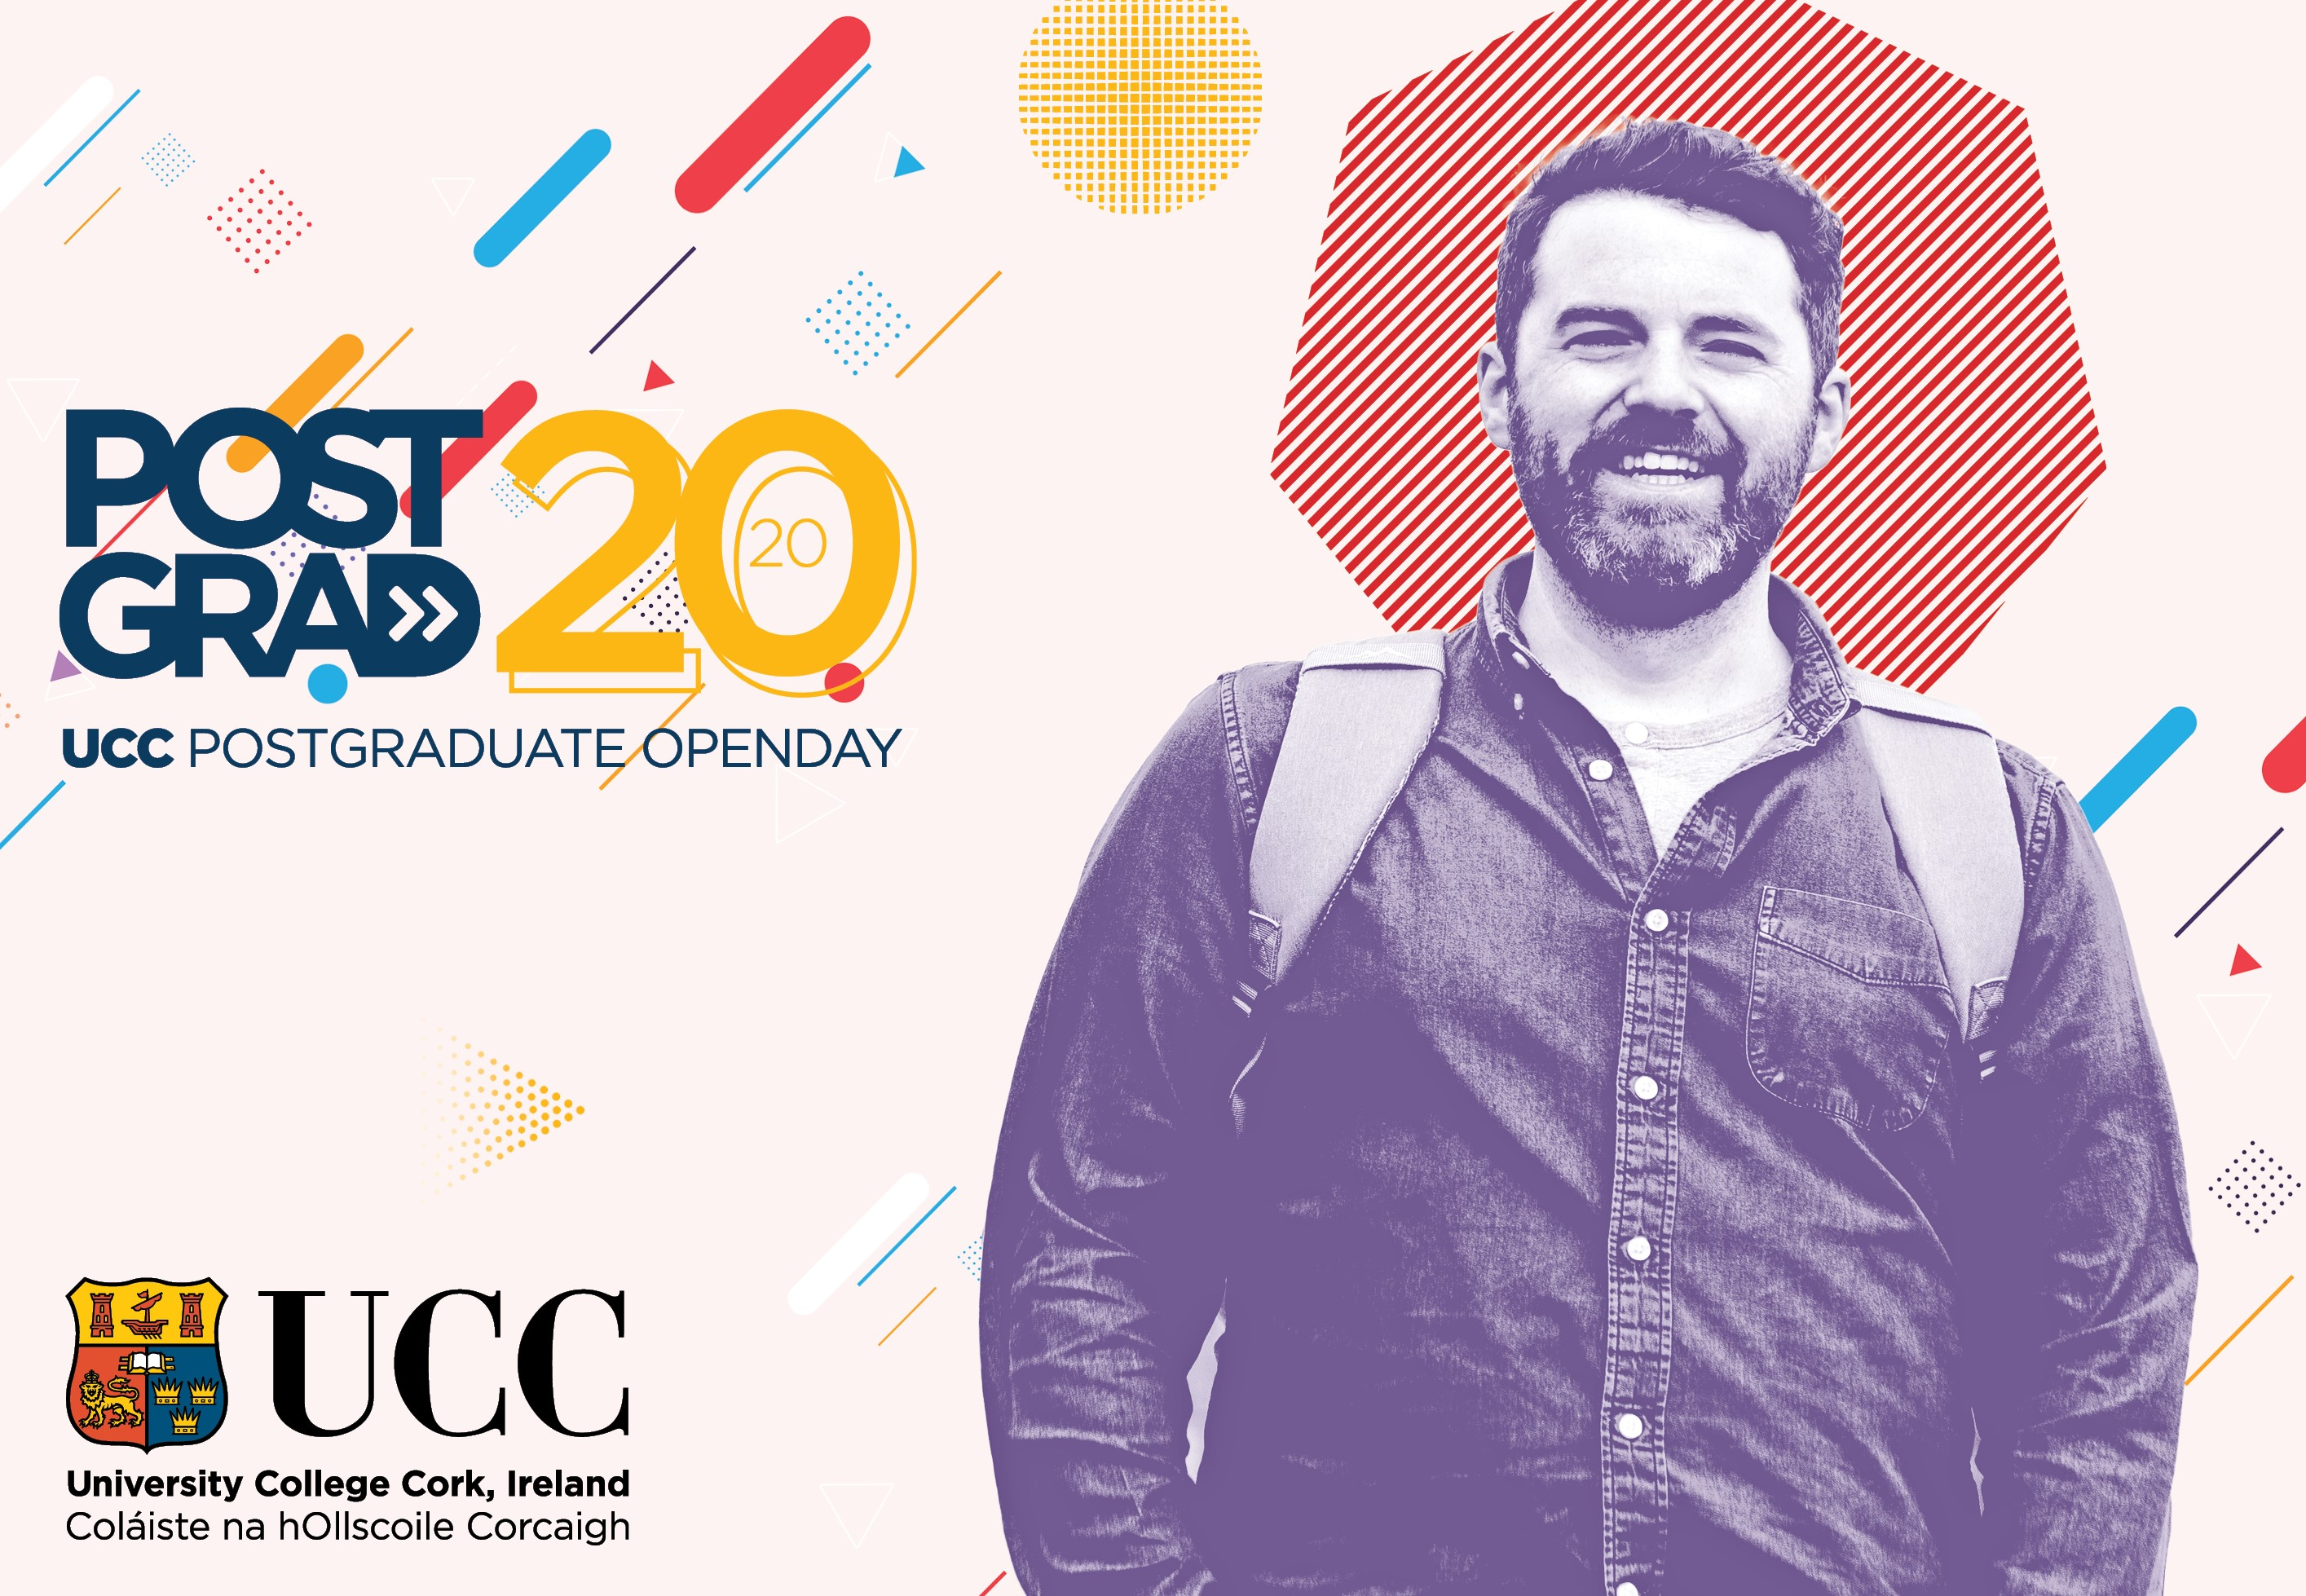 UCC Postgraduate Open Day - Tuesday 28th January from 11am to 2pm.